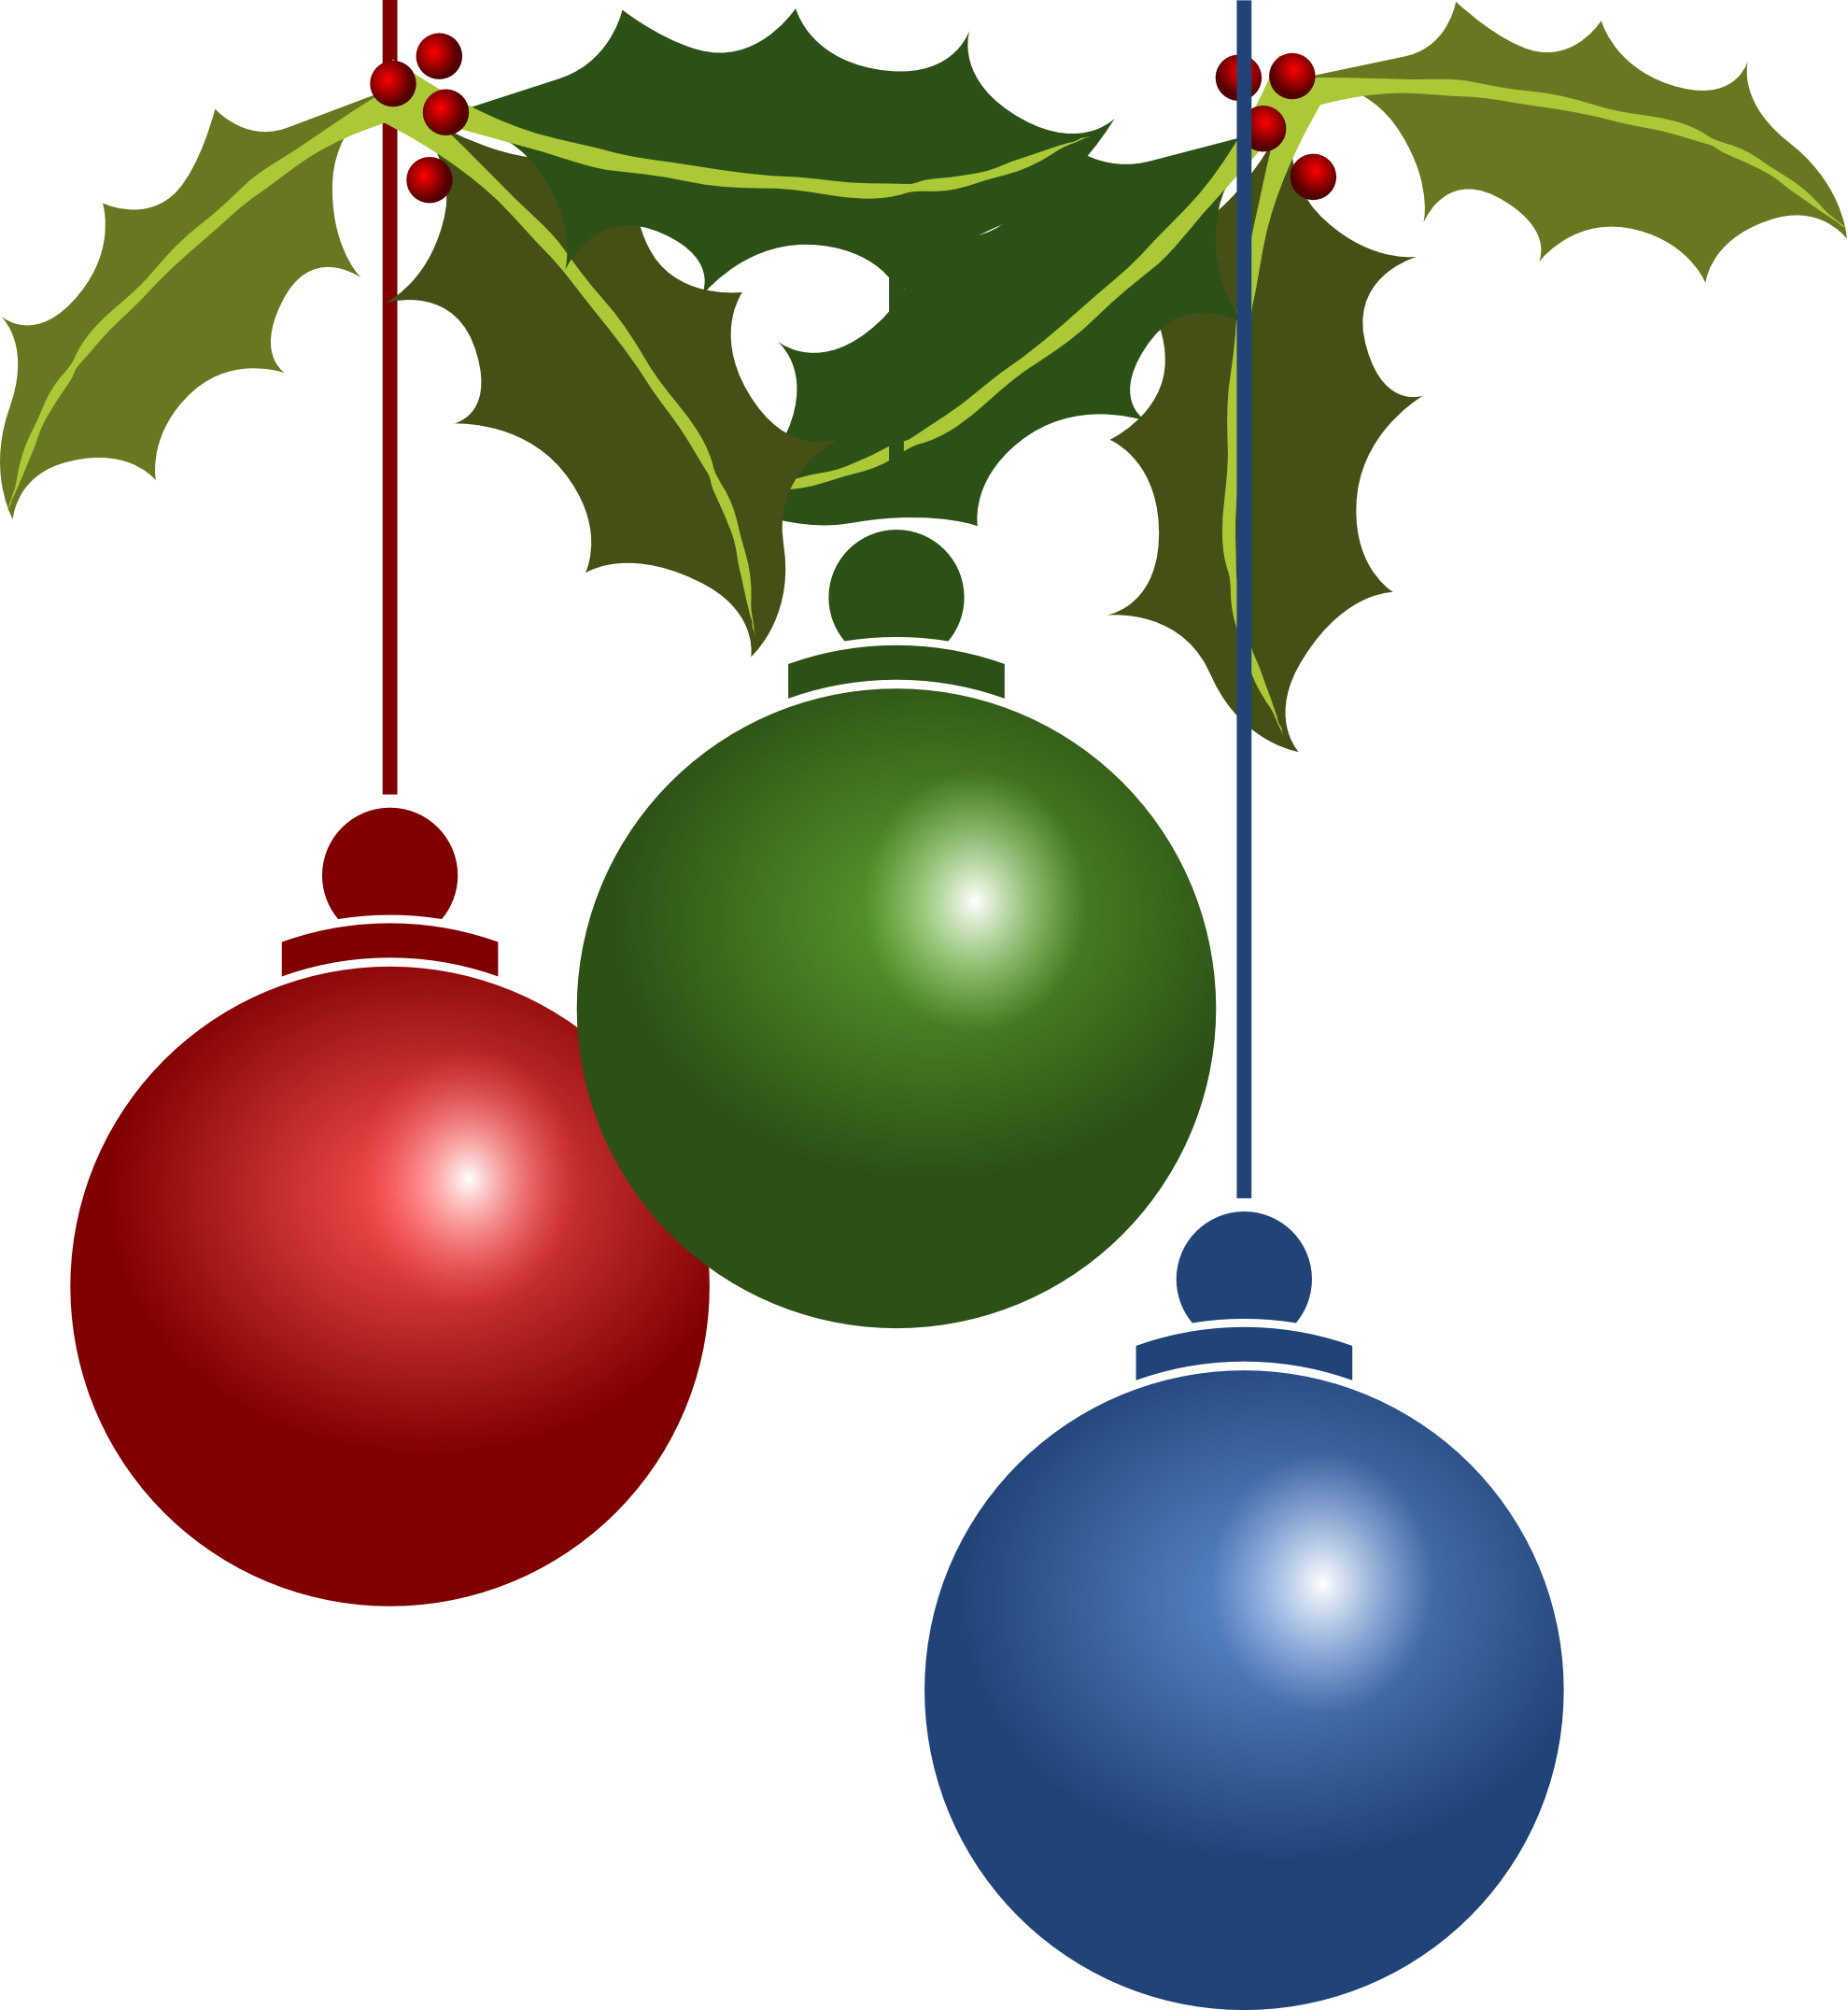 Green christmas ornament png. Ornaments transparent pictures free